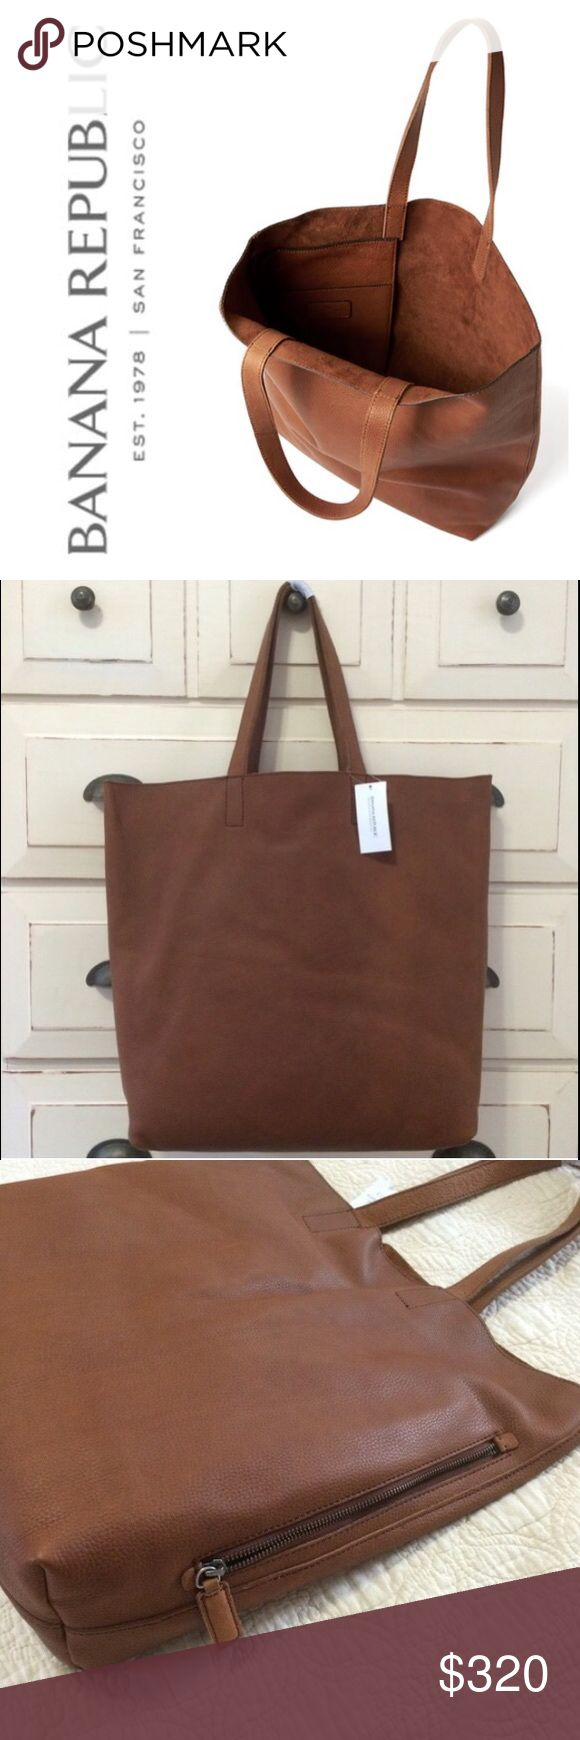 """‼️ FREE SHIPPING BR Cognac Leather Tote Bag Banana Republic's Side Zip Leather Tote is similar to Madewell's Transport Tote, but the straps are 1"""" wide for comfort and they're stitched for durability. There's an exterior zip pocket and an interior slip pocket. The leather is incredibly soft and the interior is beautiful raw sueded leather. This leather is amazing quality and made to last.  Approximately 16""""h x 14""""w x 5""""d 19"""" flat across the top  ❌ Sorry, no trades. Banana Republic Bags Totes"""